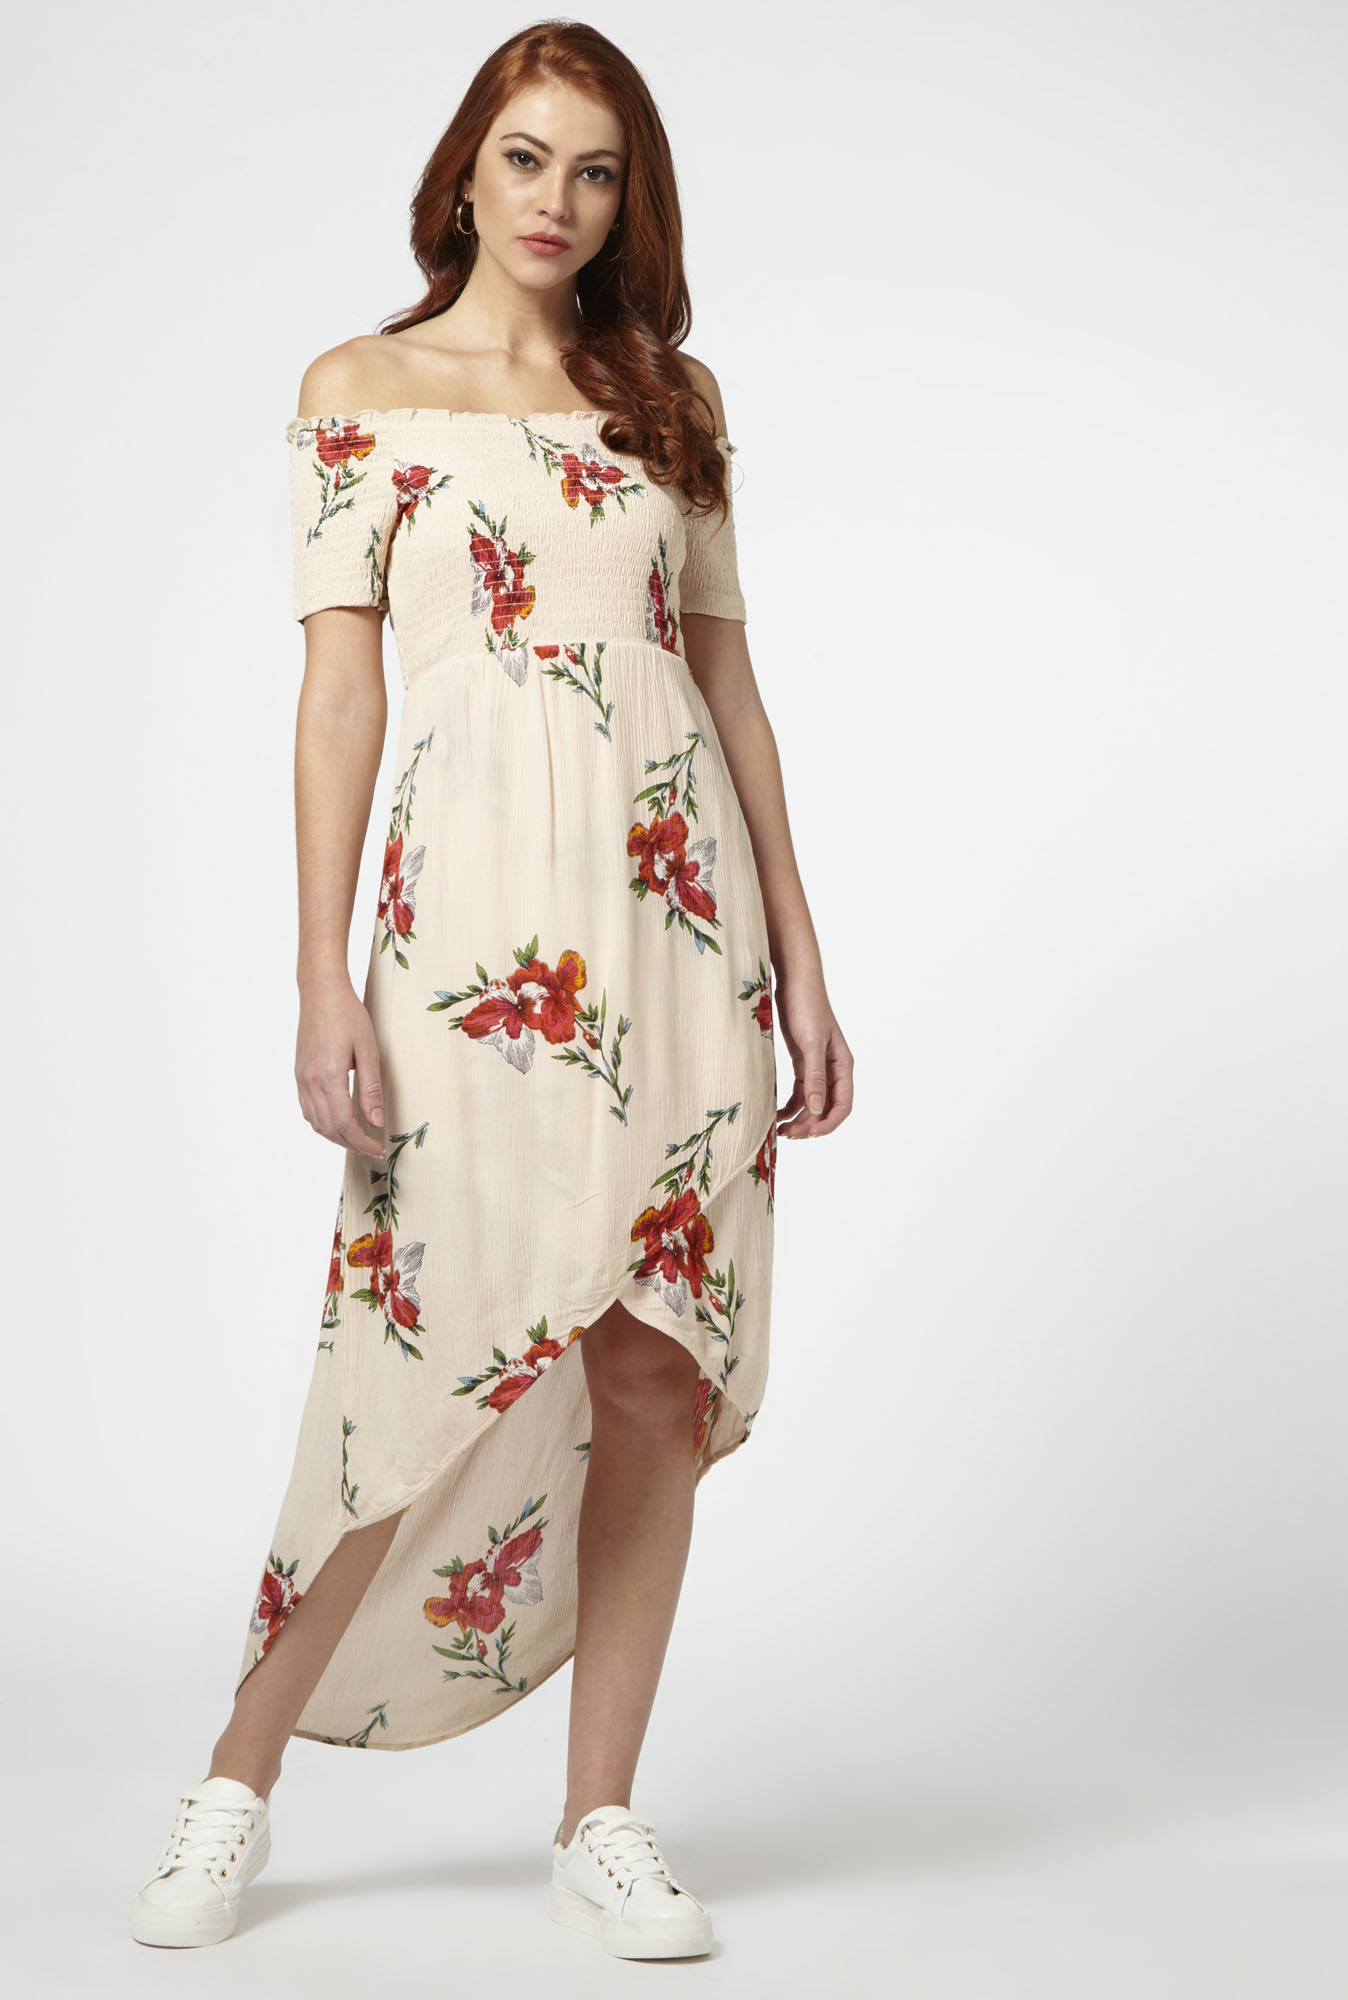 Nuon by Westside Peach Dress